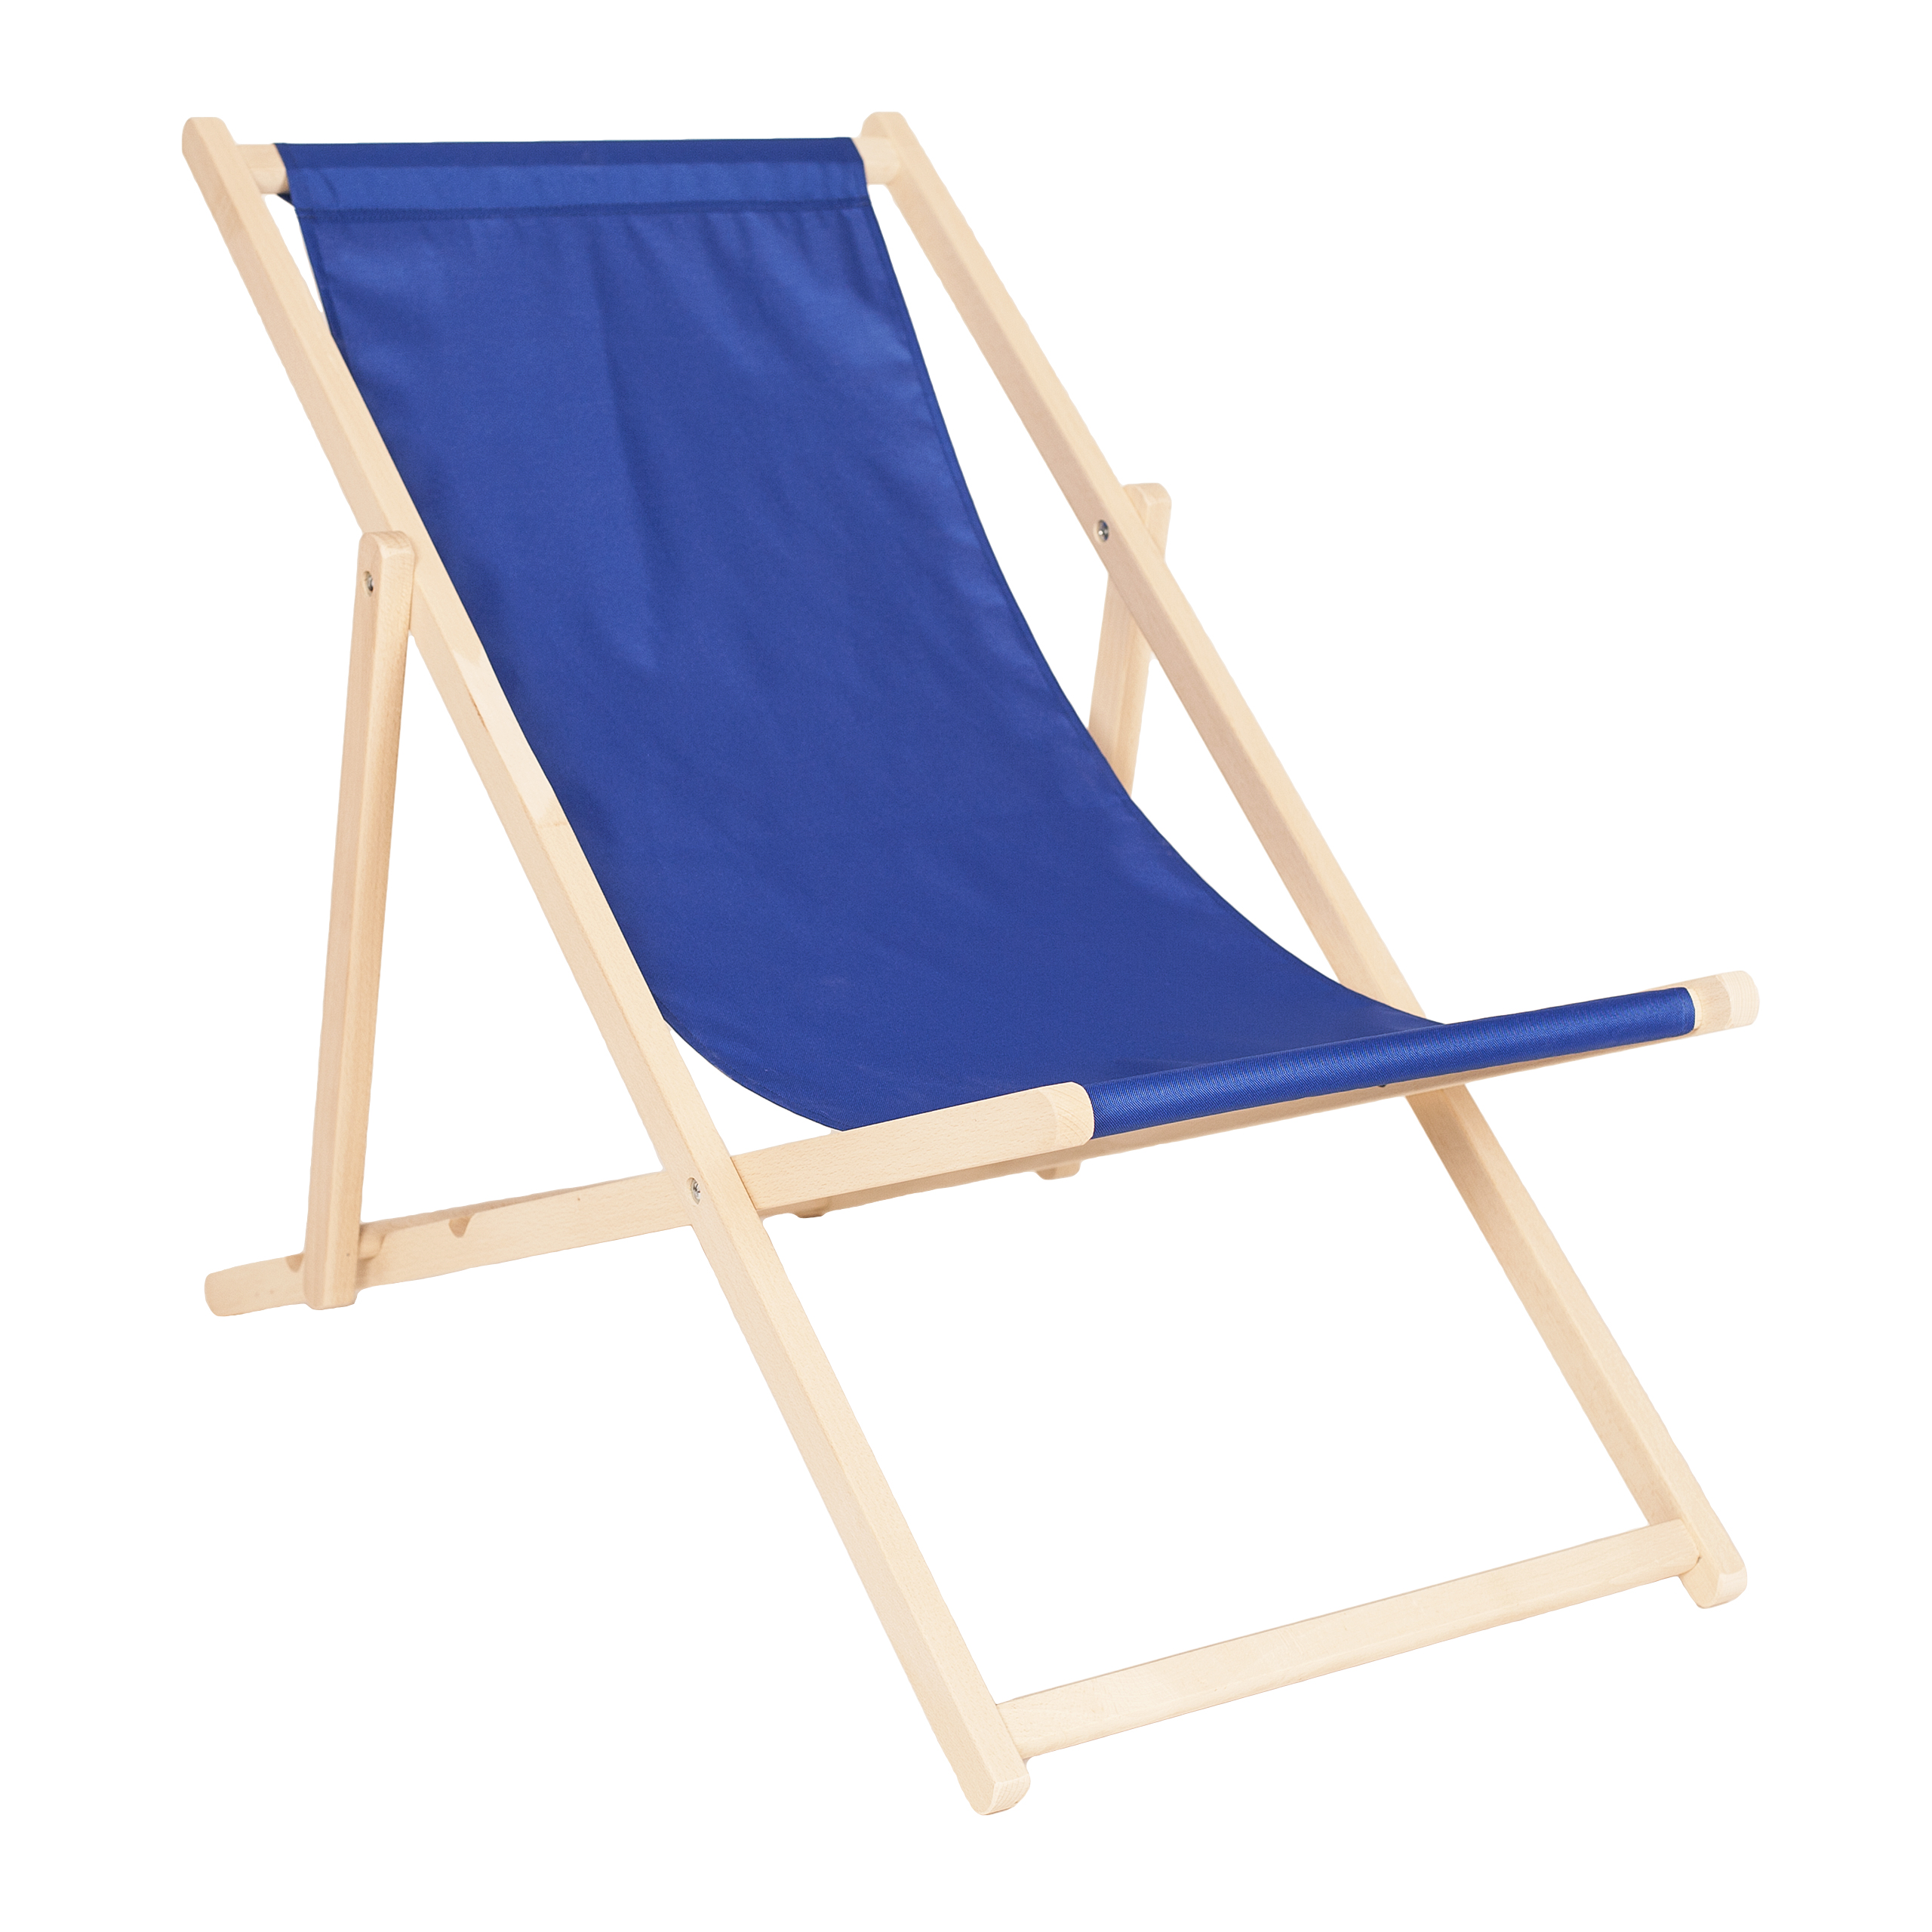 Wooden Deck Chair CLASSIC BLUE